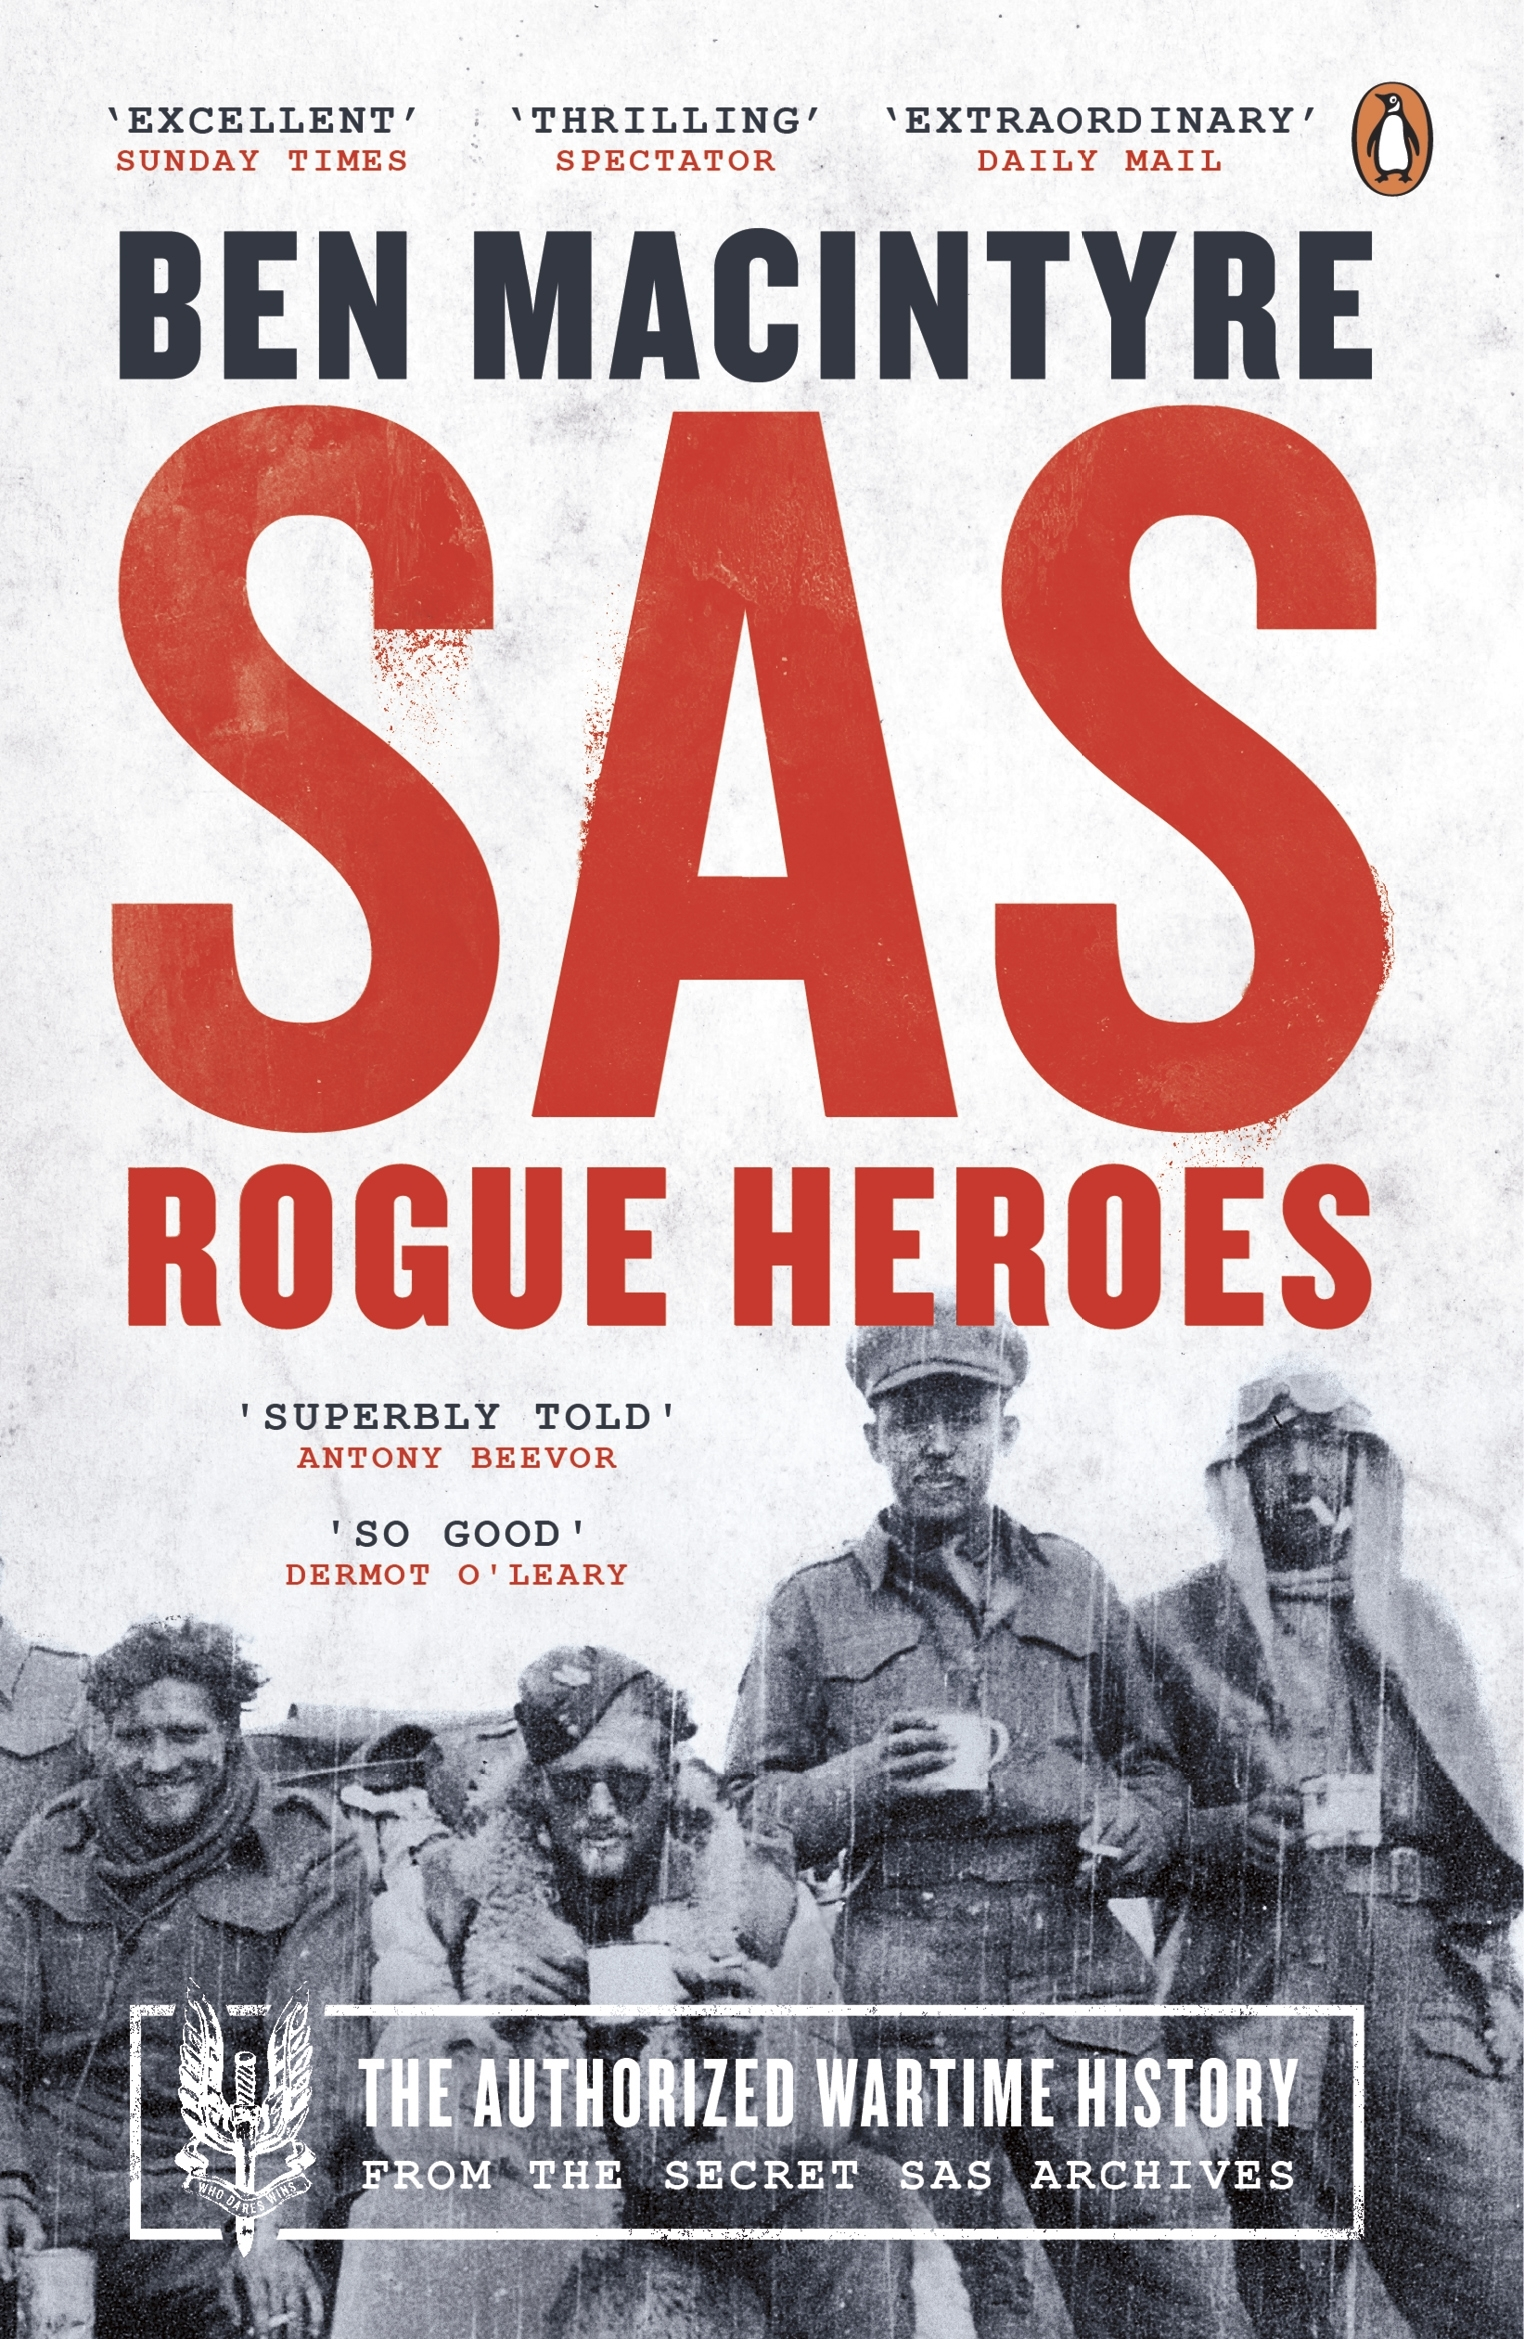 history of sas The bbc has exclusive access to the remarkable piece of history it was 1946 world war ii was over and so was the special air service, better known as the sas.